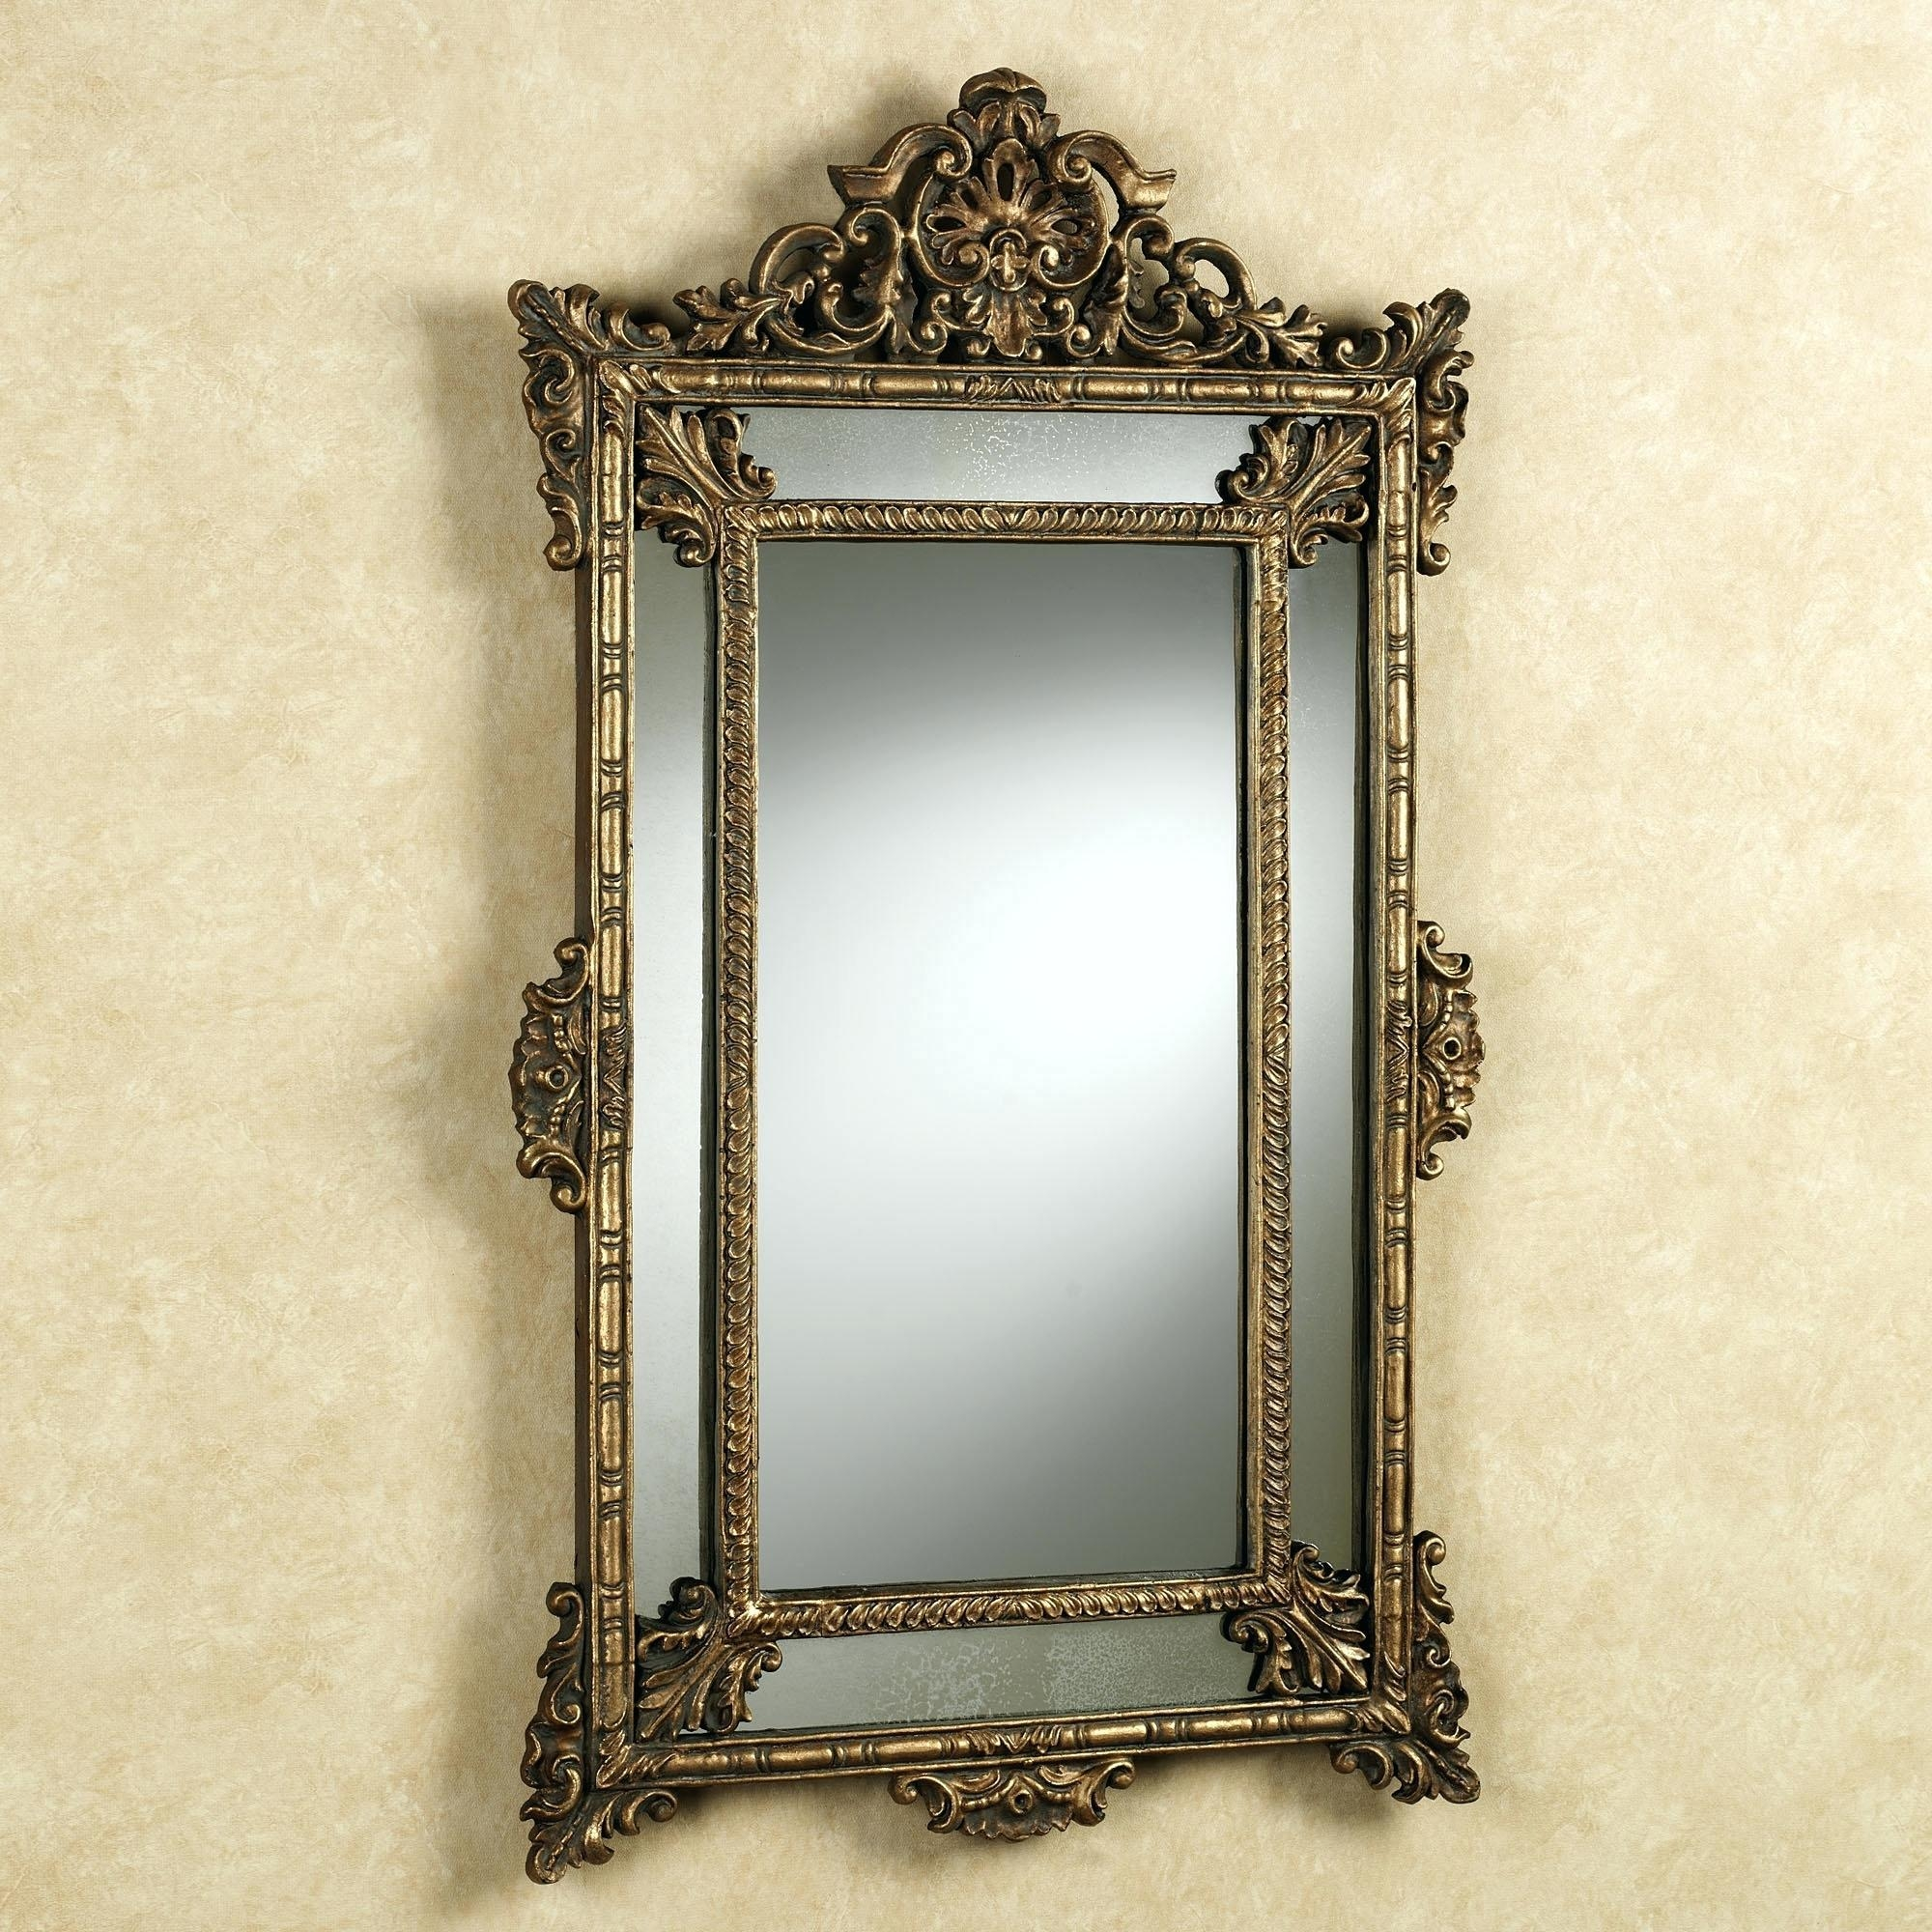 Vintage Wall Mirror Hd Walls Find Wallpapersantique Silver Mirrors Inside Antique Wall Mirror (Photo 5 of 20)